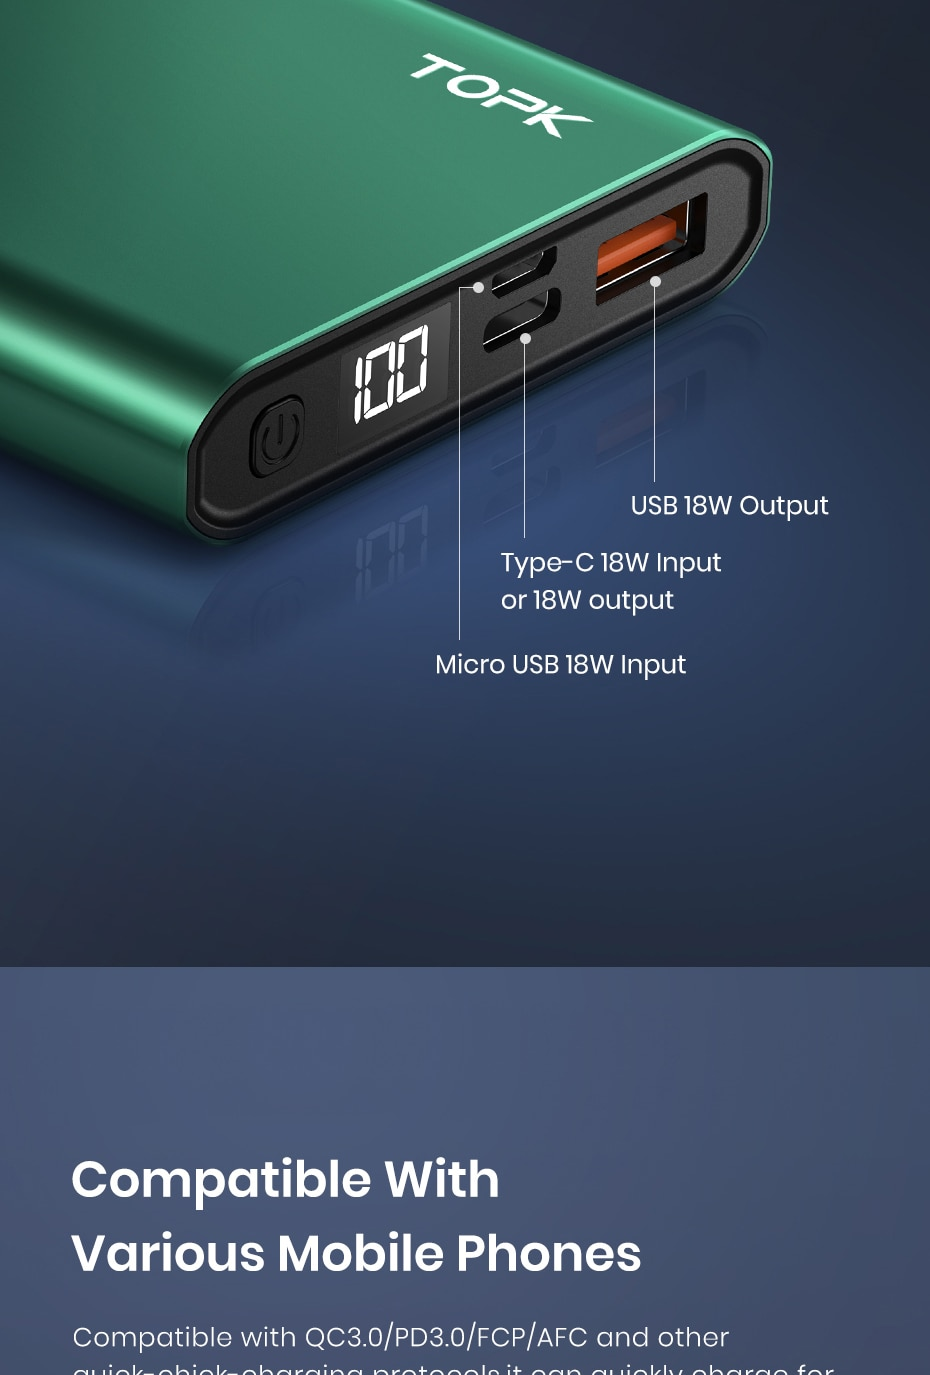 Hd207f243b5784eefabedc4766c64d3805 - TOPK I1006P Power Bank 10000mAh Portable Charger LED External Battery PowerBank PD Two-way Fast Charging PoverBank for Xiaomi mi